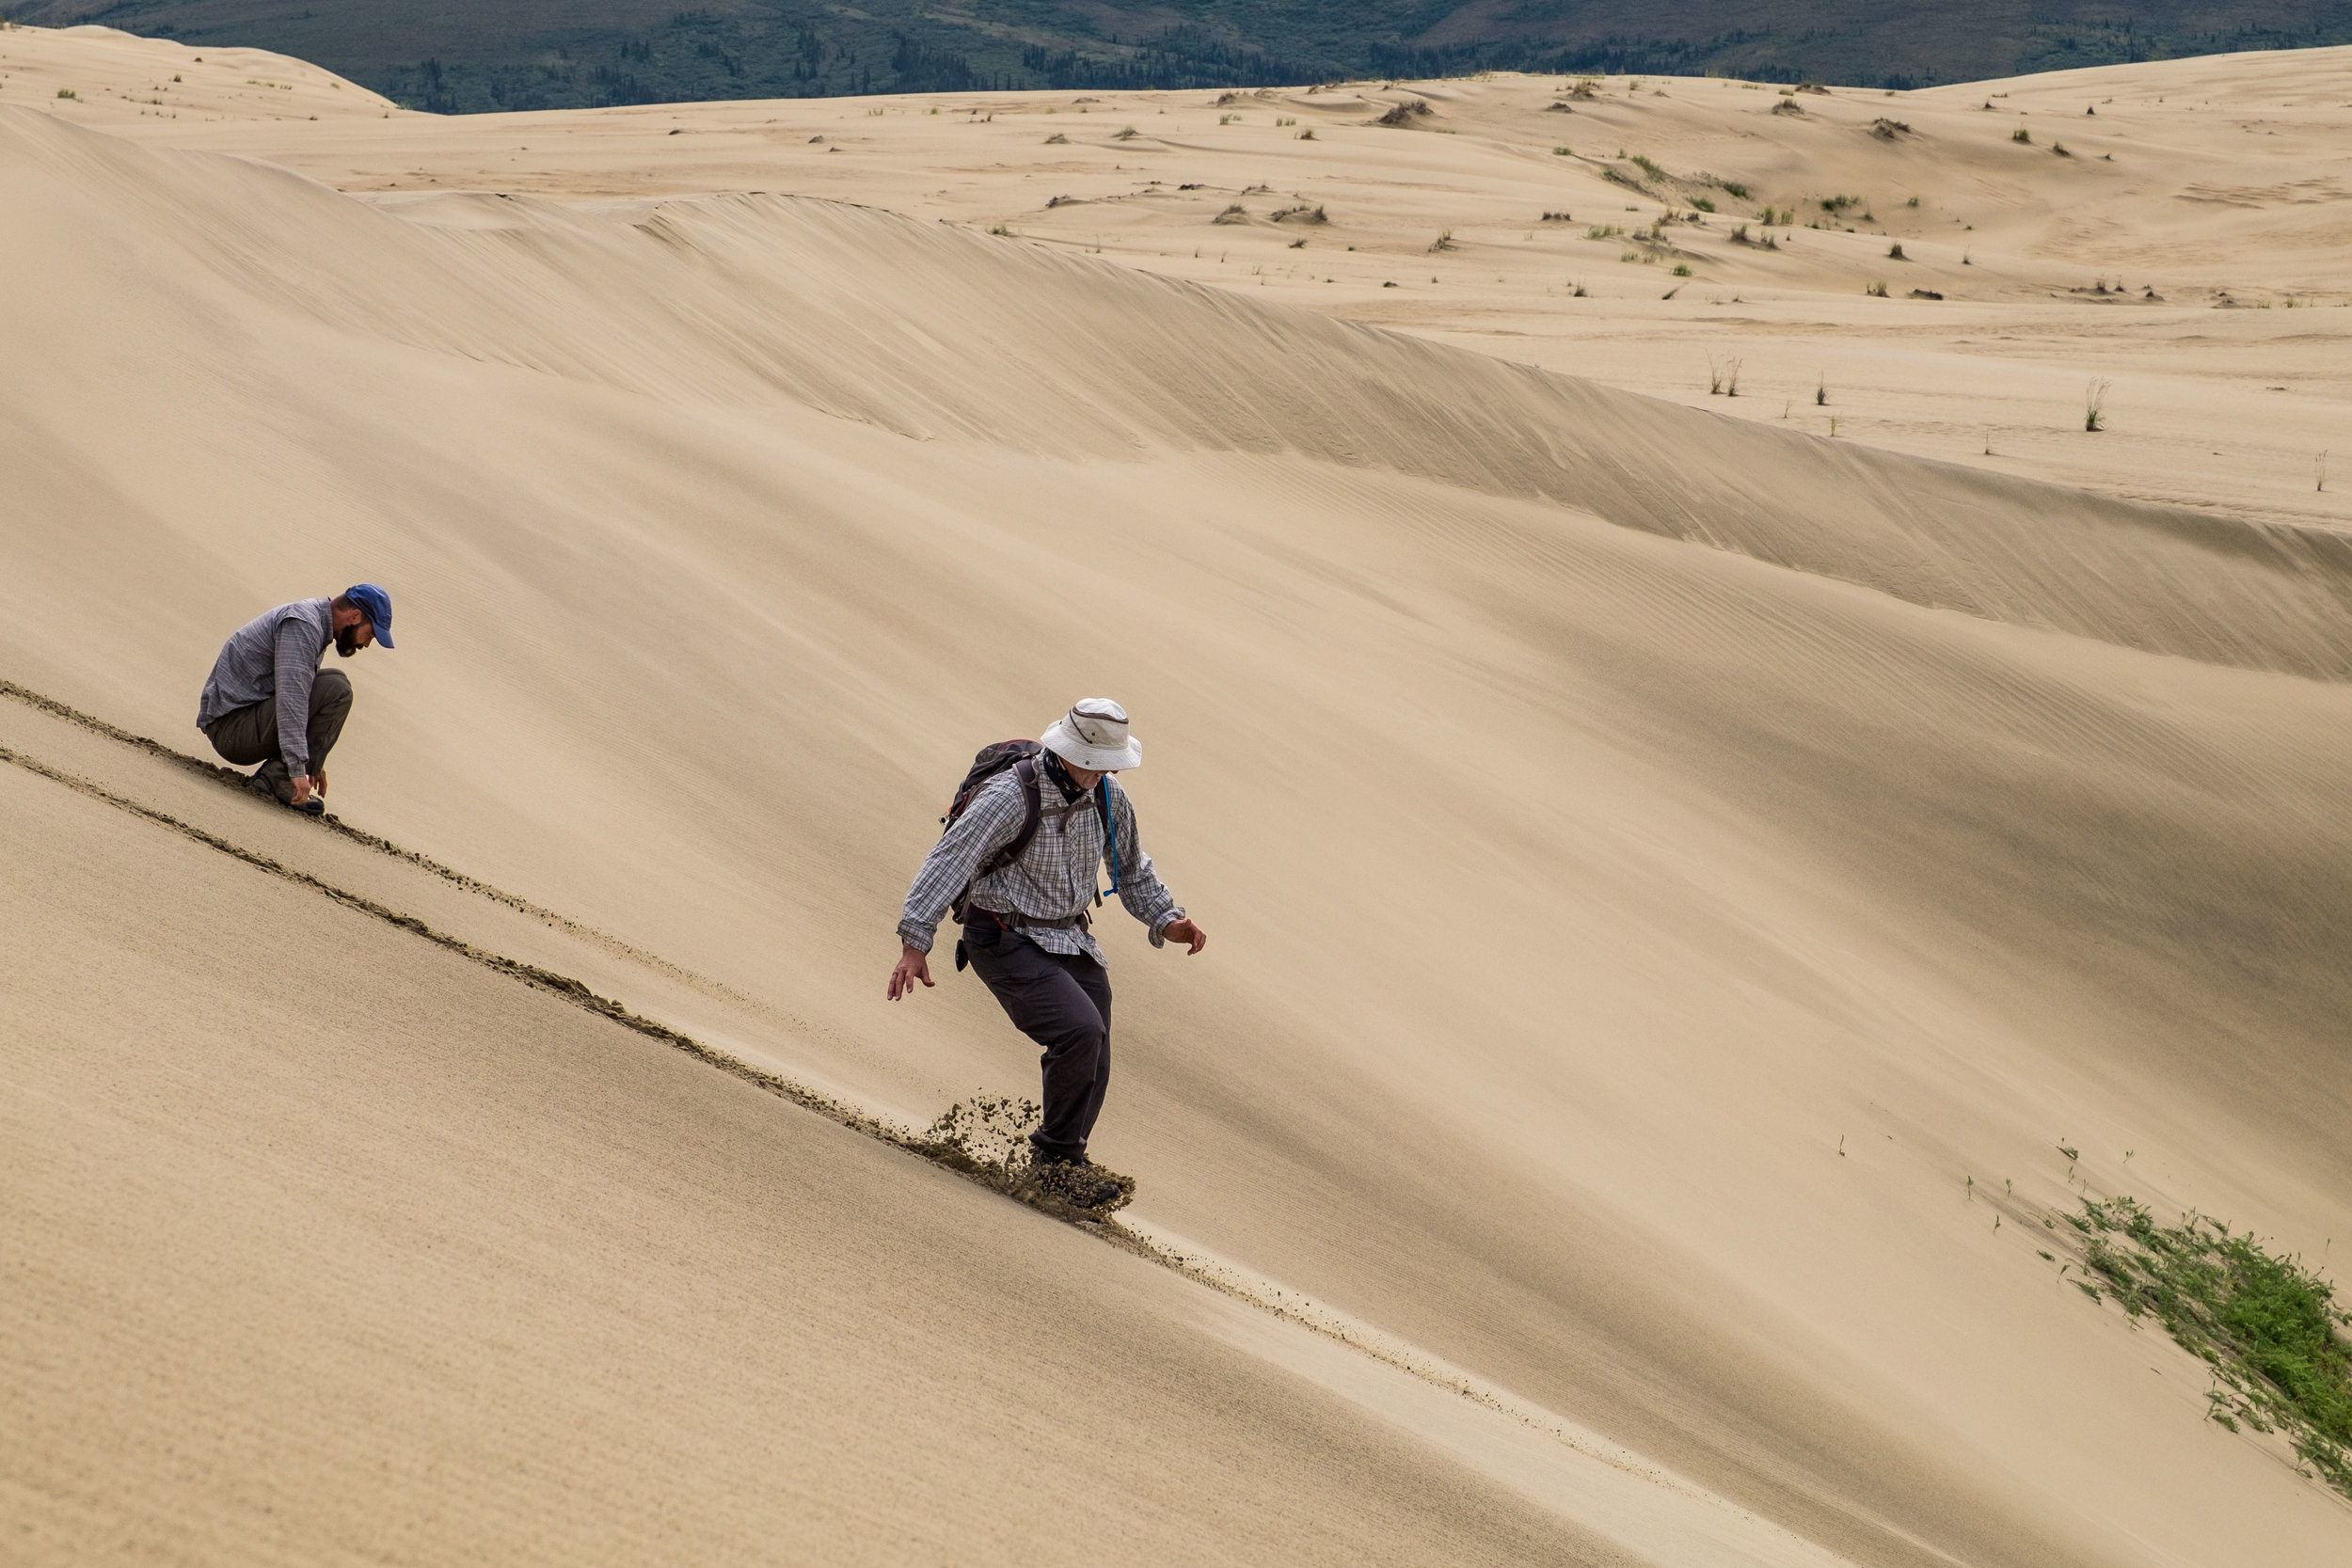 Some thought it would be fun to run down the dunes.